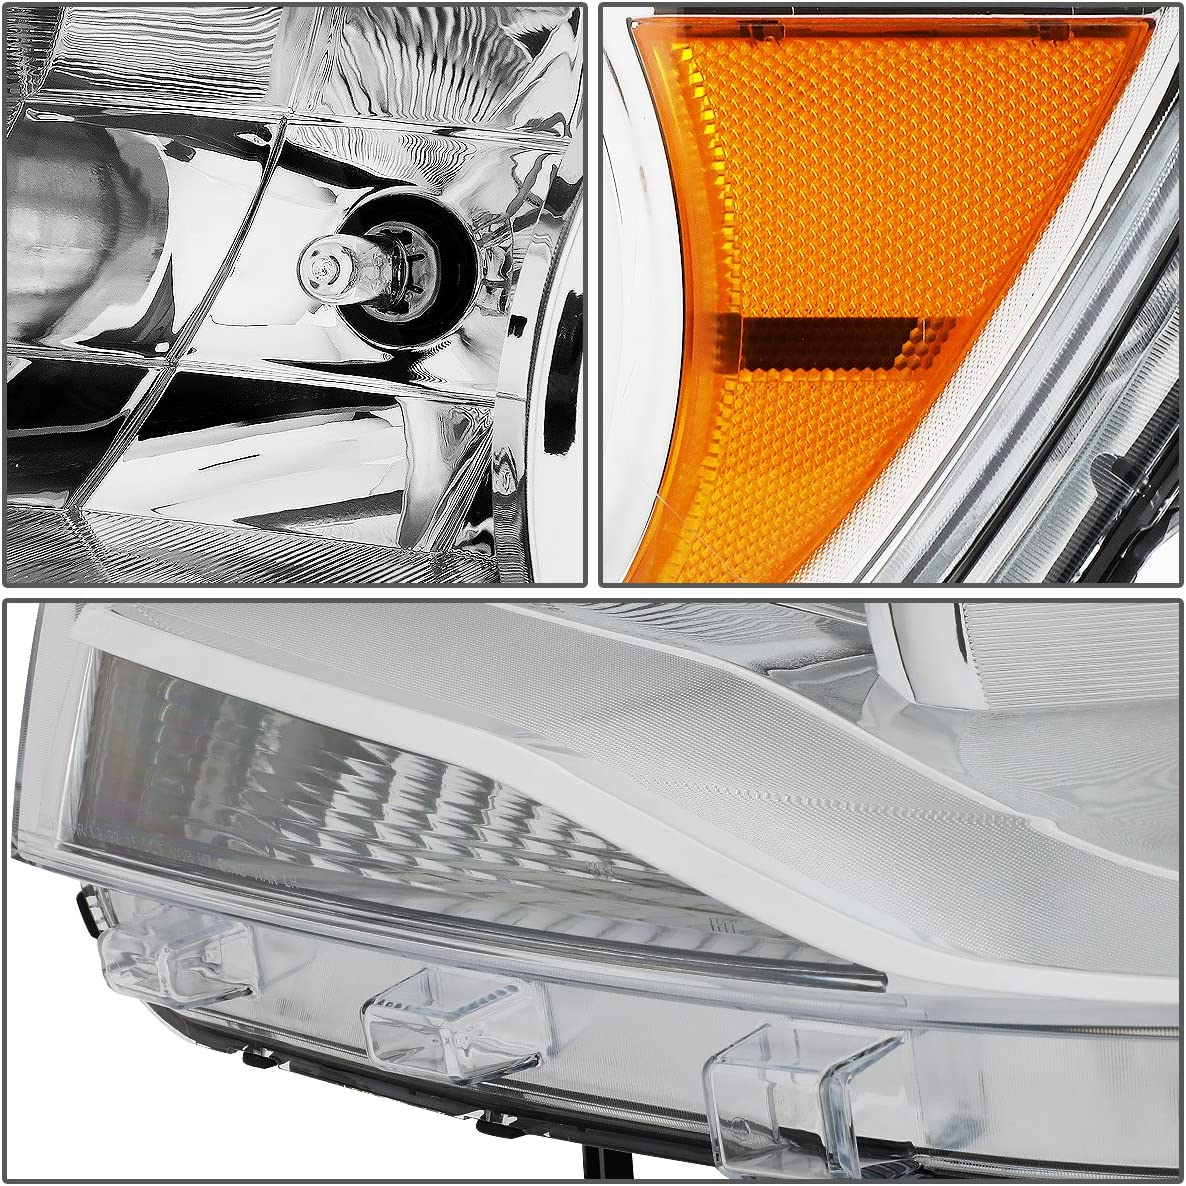 For 15-17 Chevy Colorado DNA Motoring HL-OH-CCO15-BK-CL1 Pair of Headlight